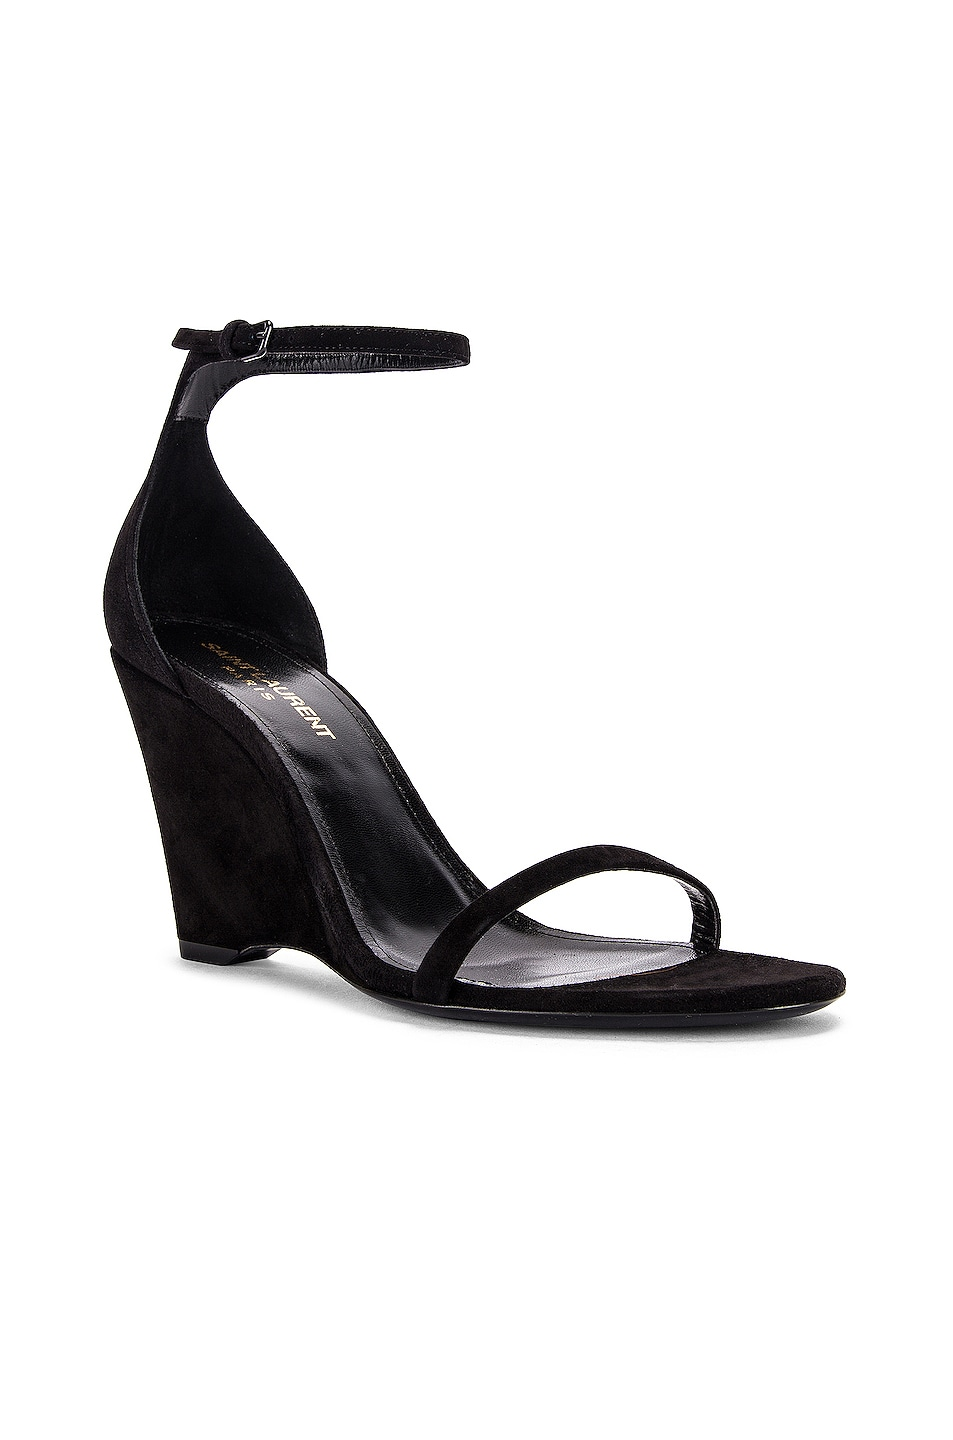 Image 2 of Saint Laurent Lila Wedge Sandals in Black